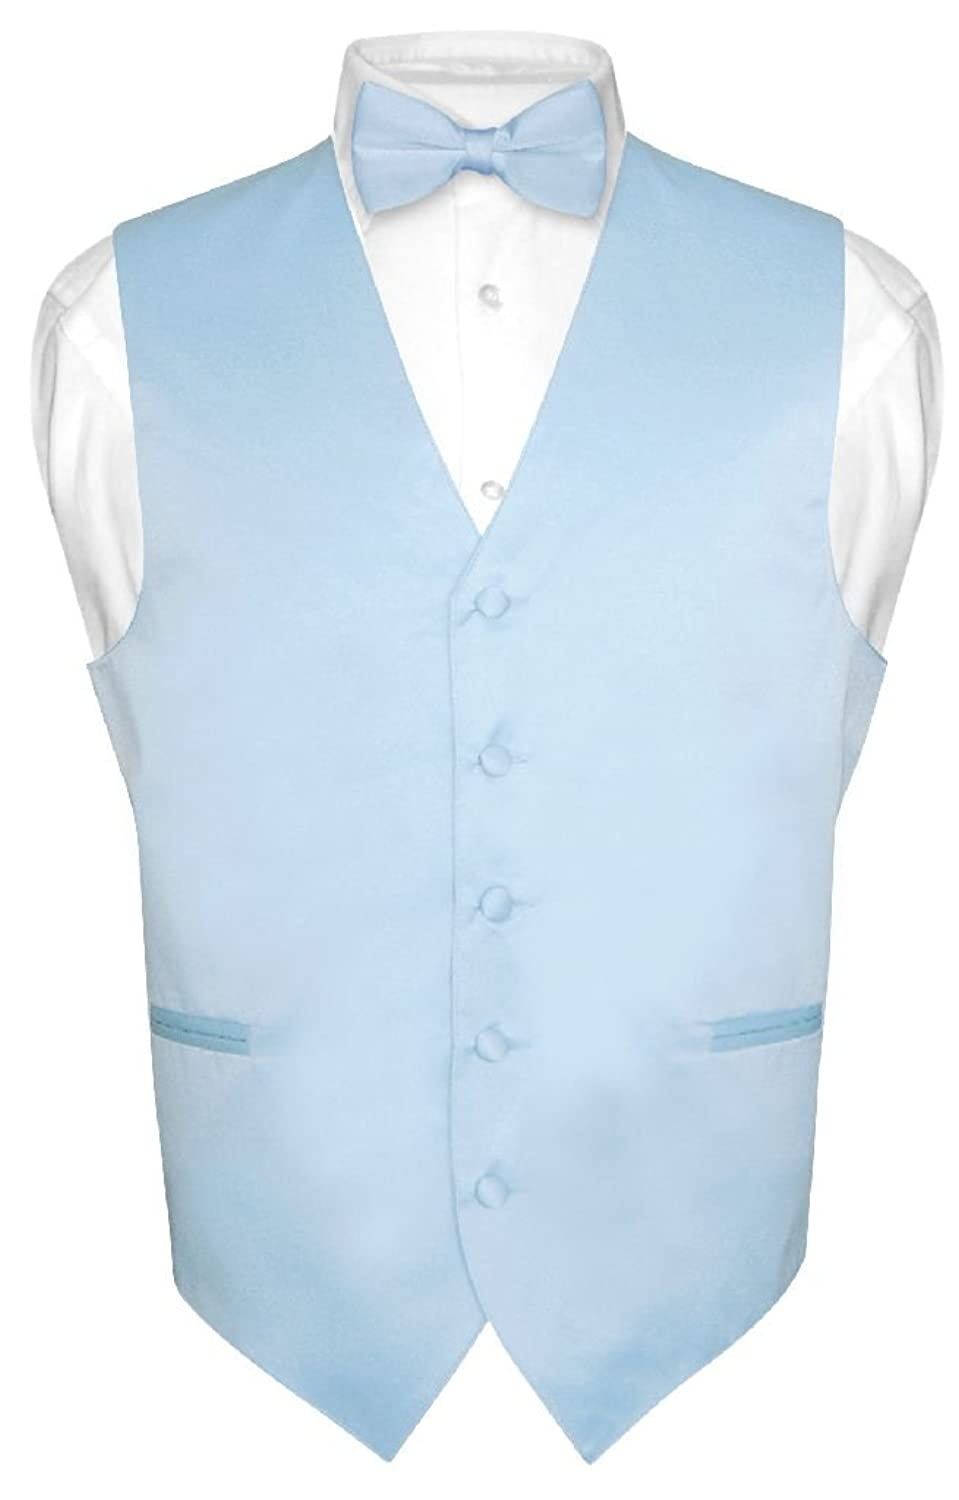 Find great deals on eBay for light blue mens suit and light blue mens wedding suit. Shop with confidence.